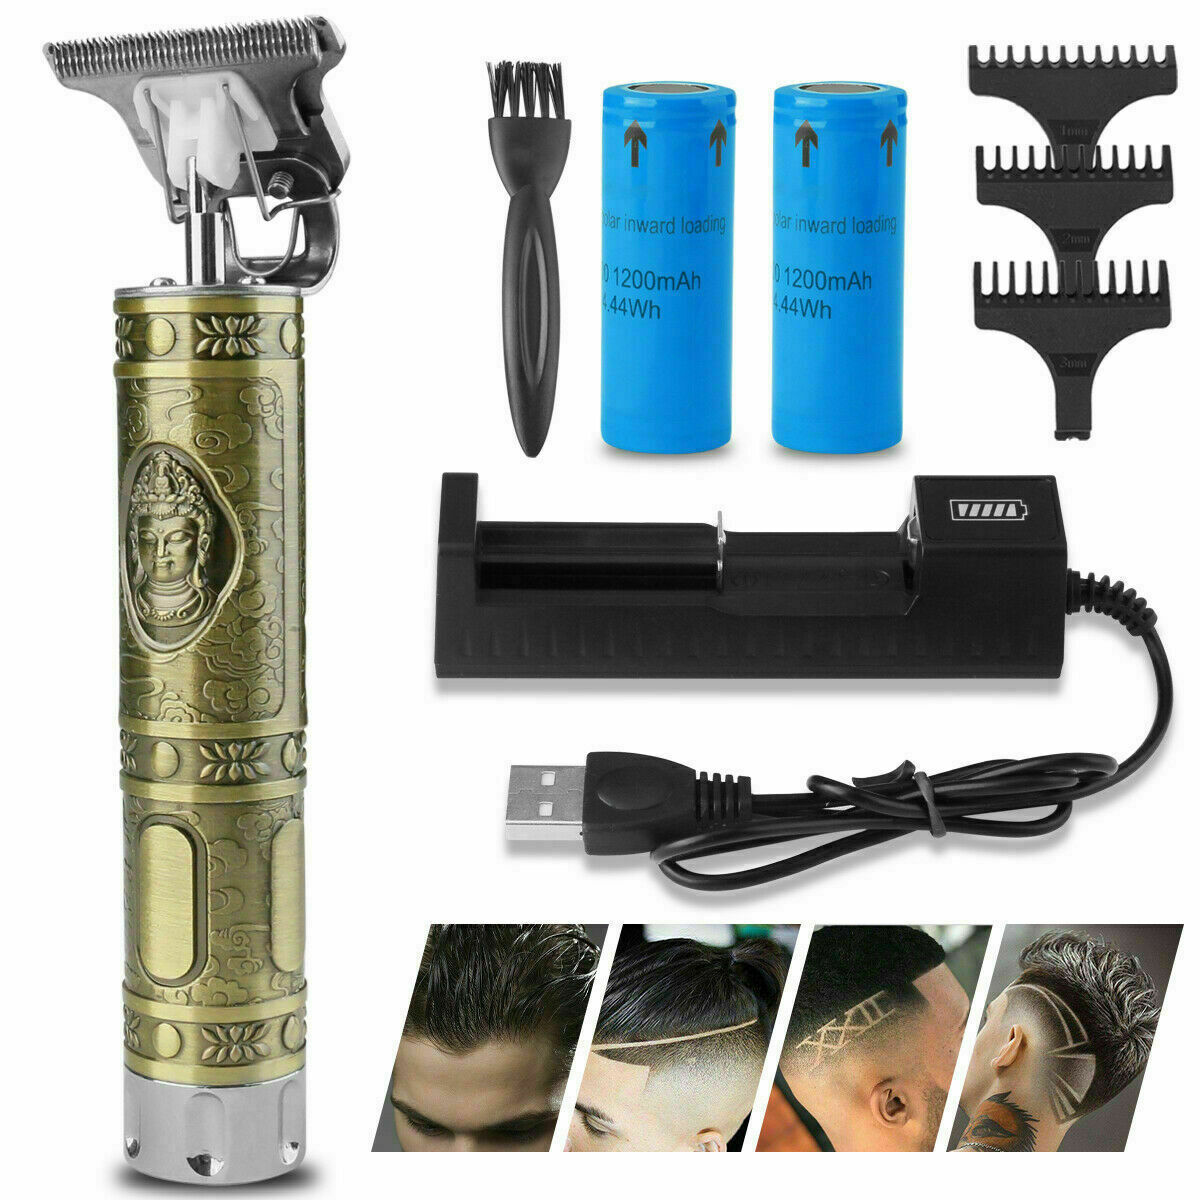 Image 121 - Genuine-KEMEI-1974a-Cordless-Hair-Clippers-Trimmer-Shaving-Cutting-Beard-Barber